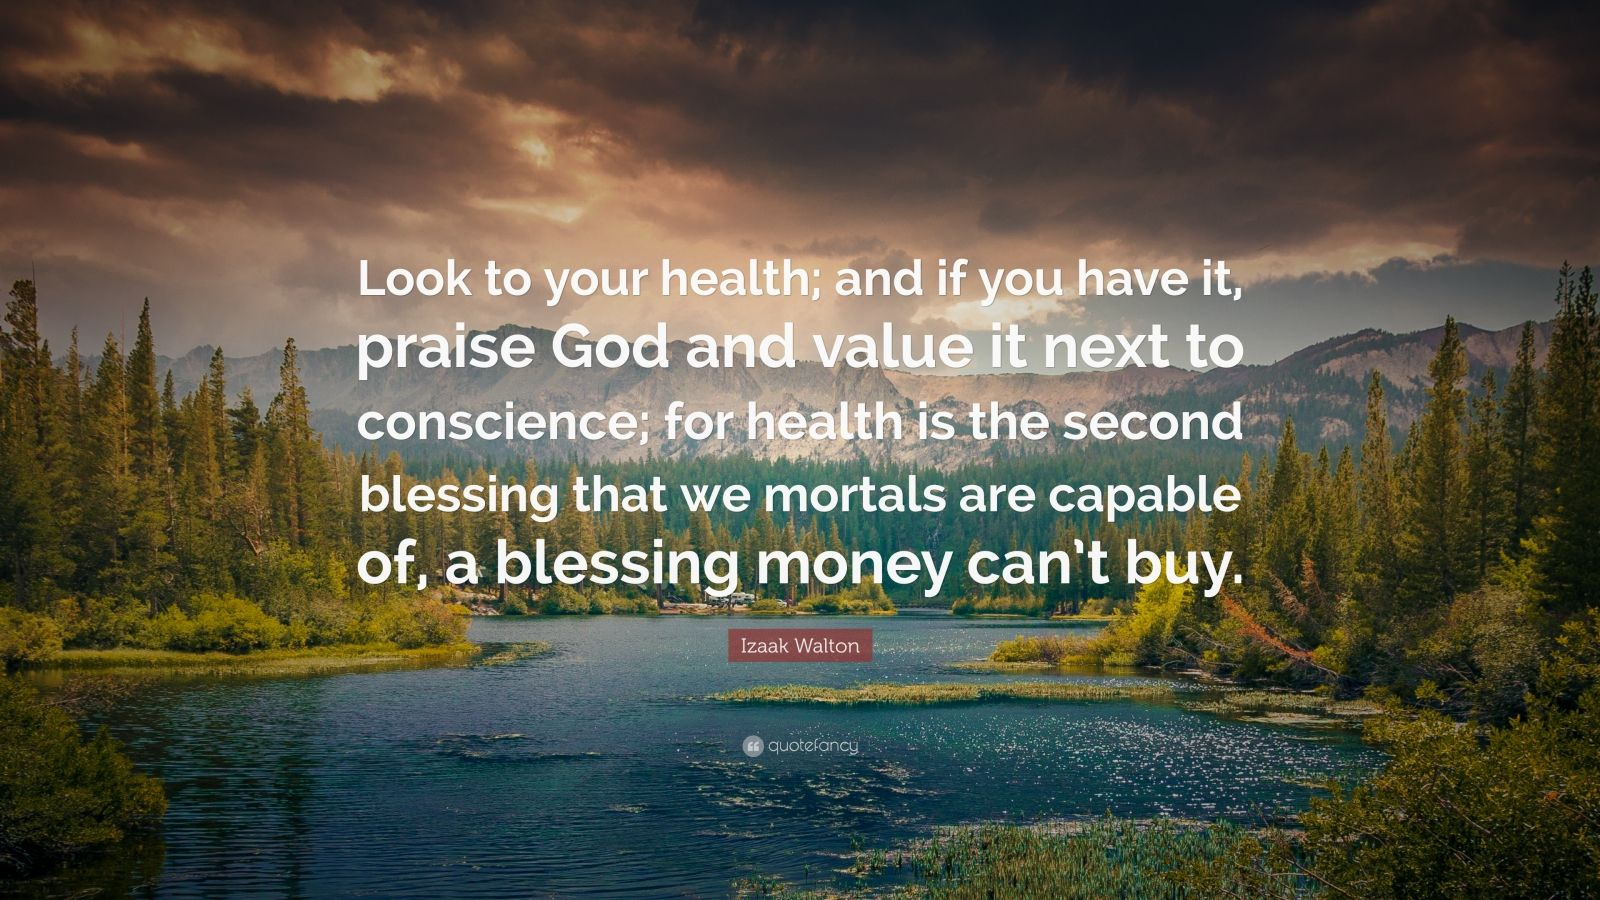 Health, A Blessing Money just Can't Buy